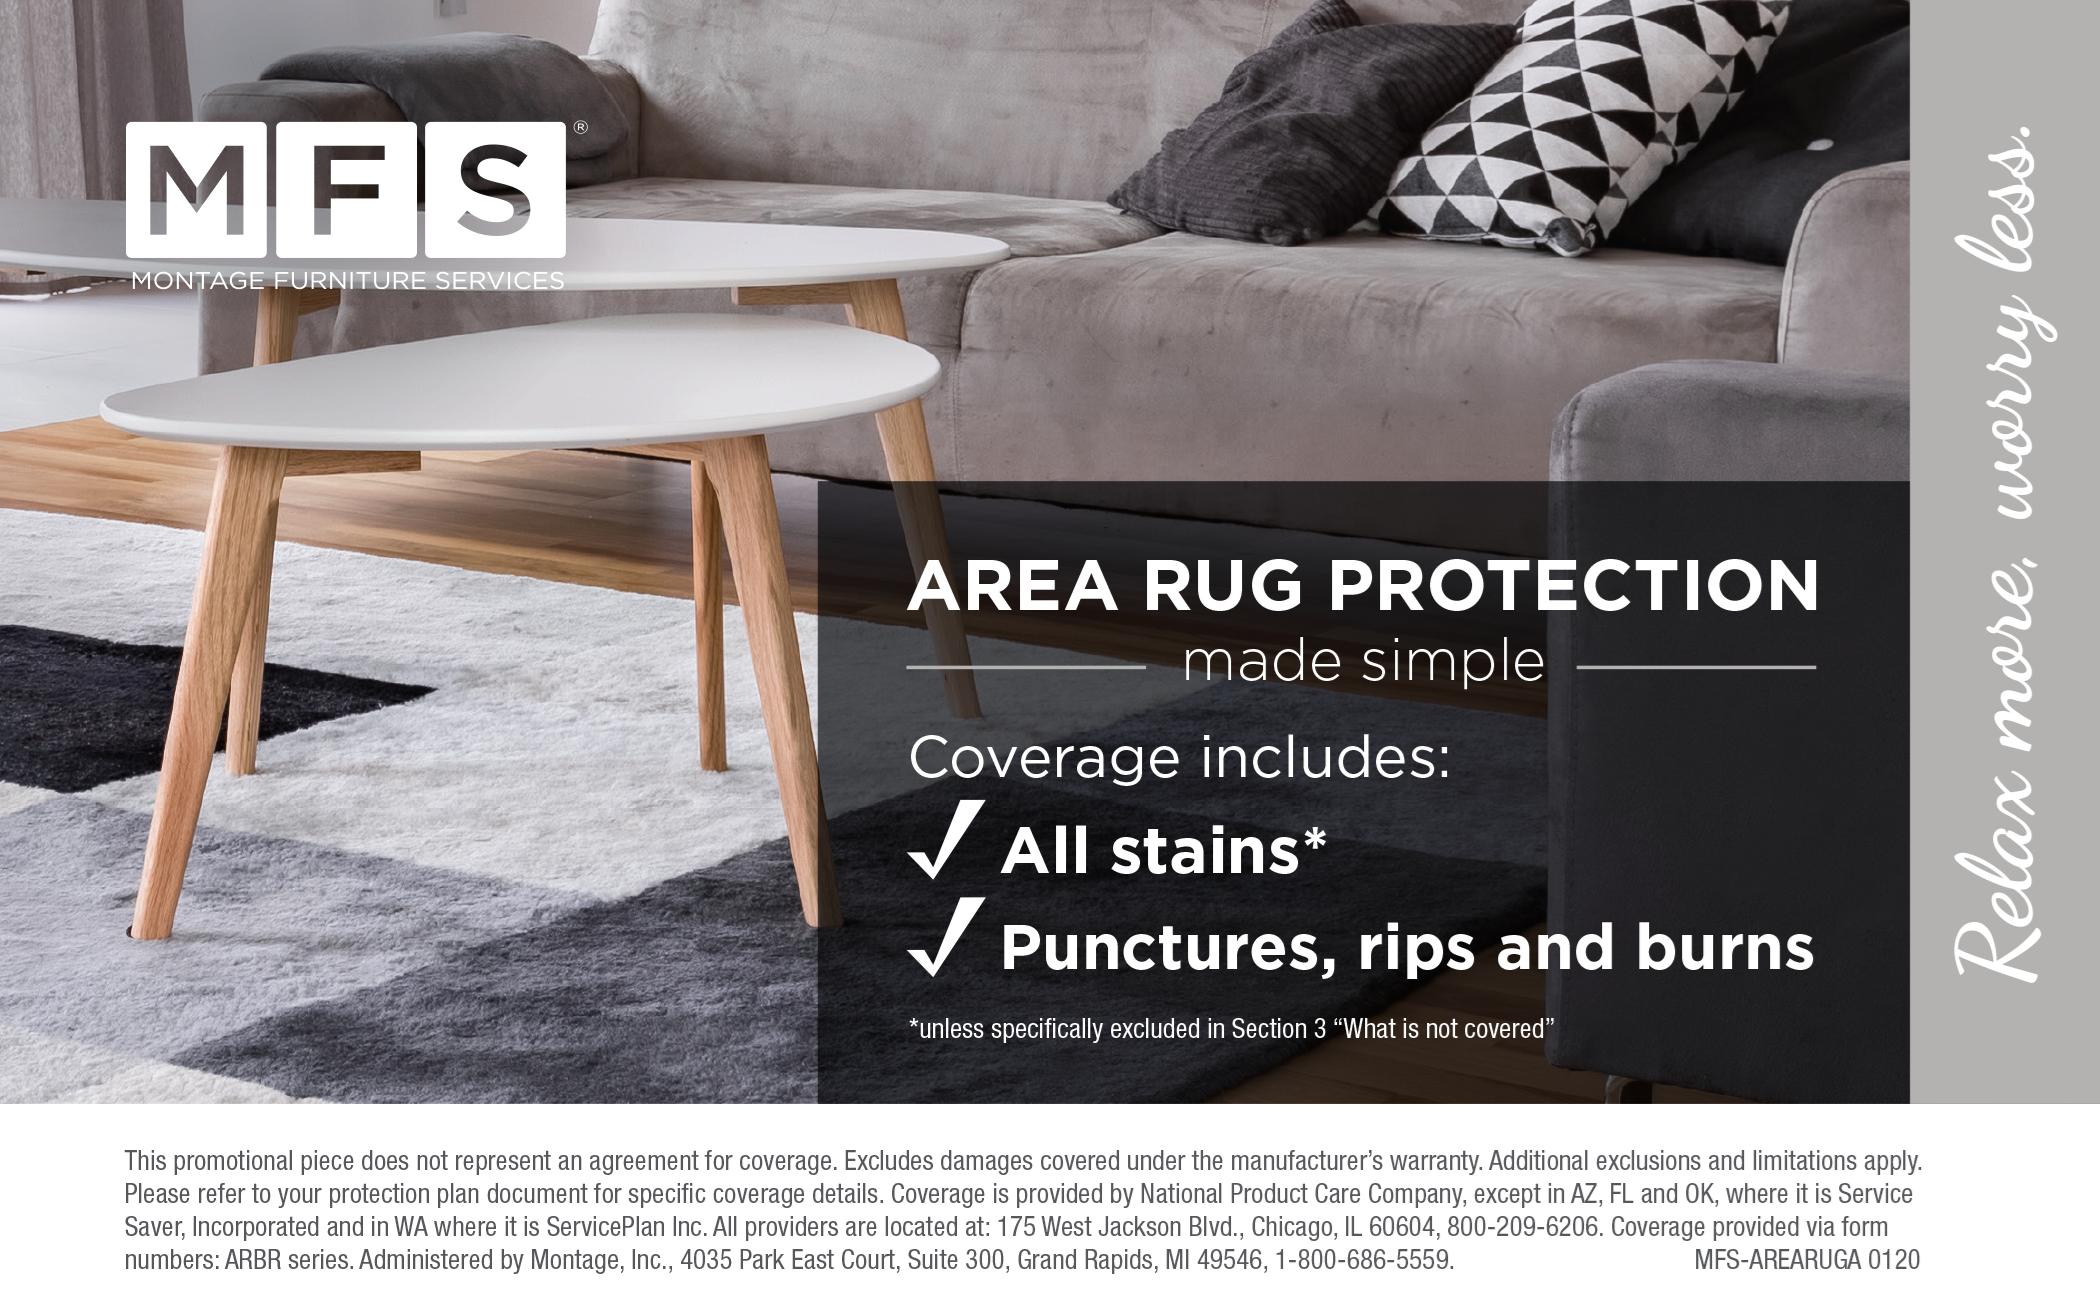 Area Rug 5-Year Protection Graphic